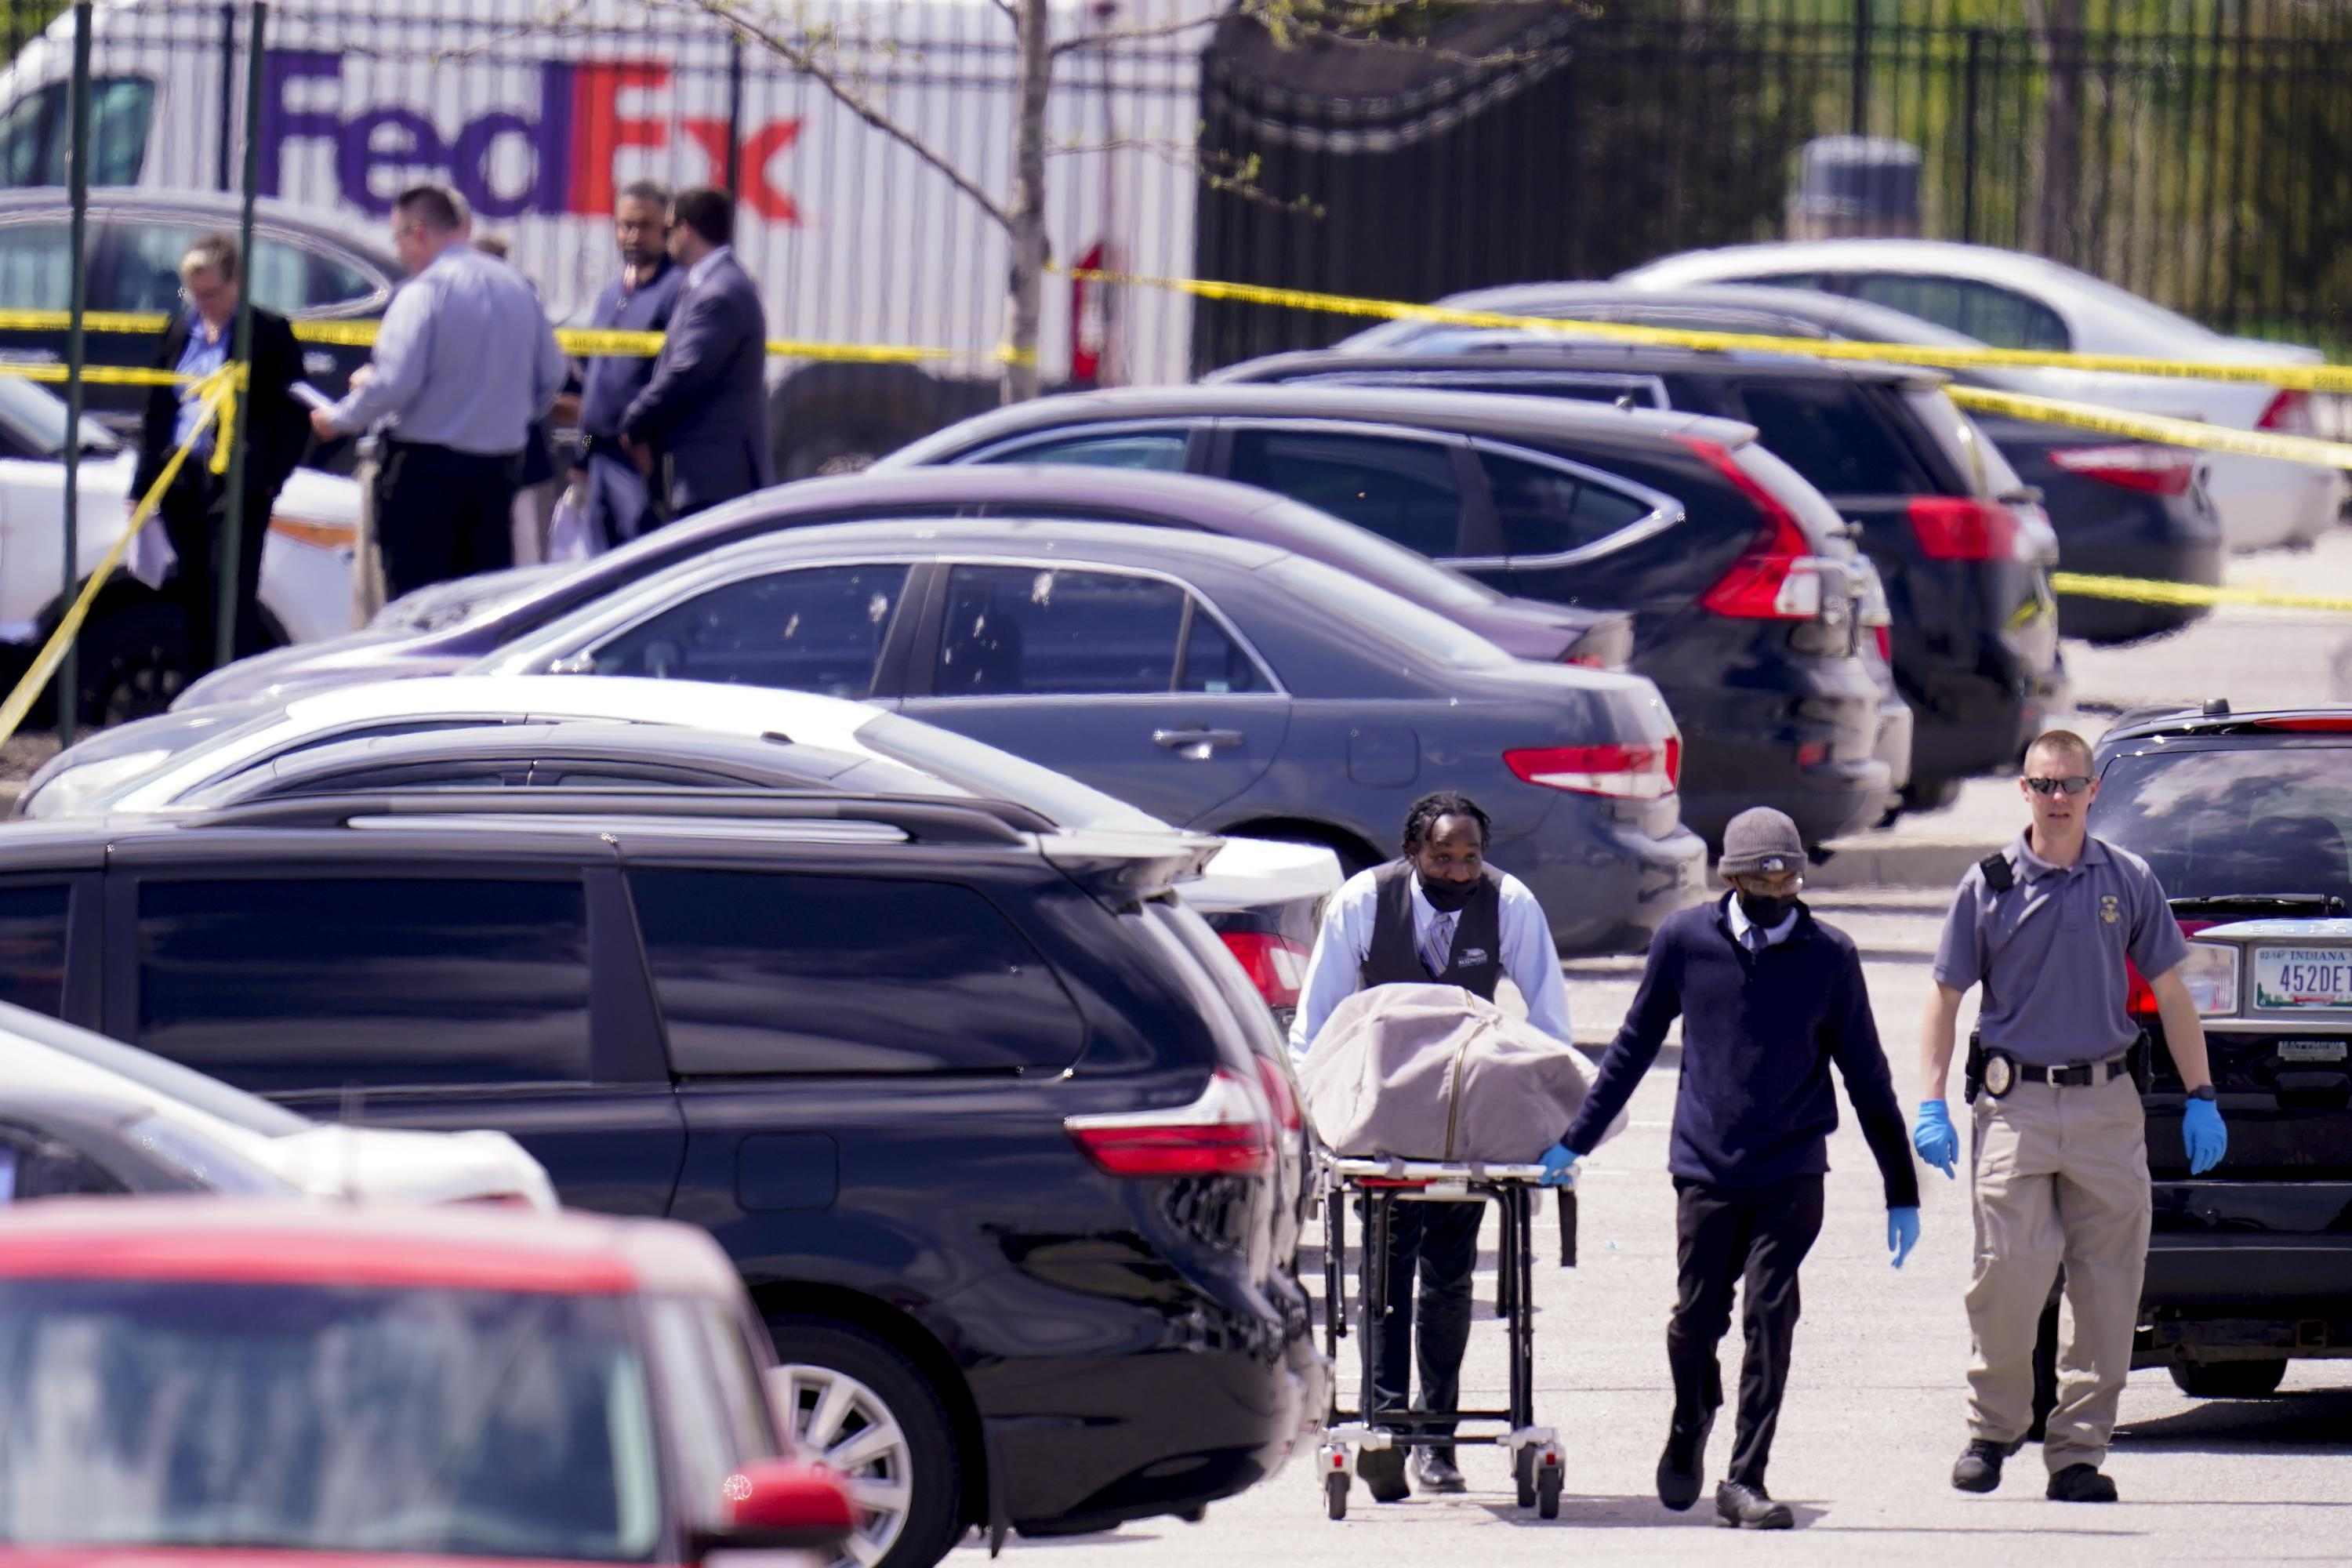 Tight-knit Sikh community in shock over FedEx shooting